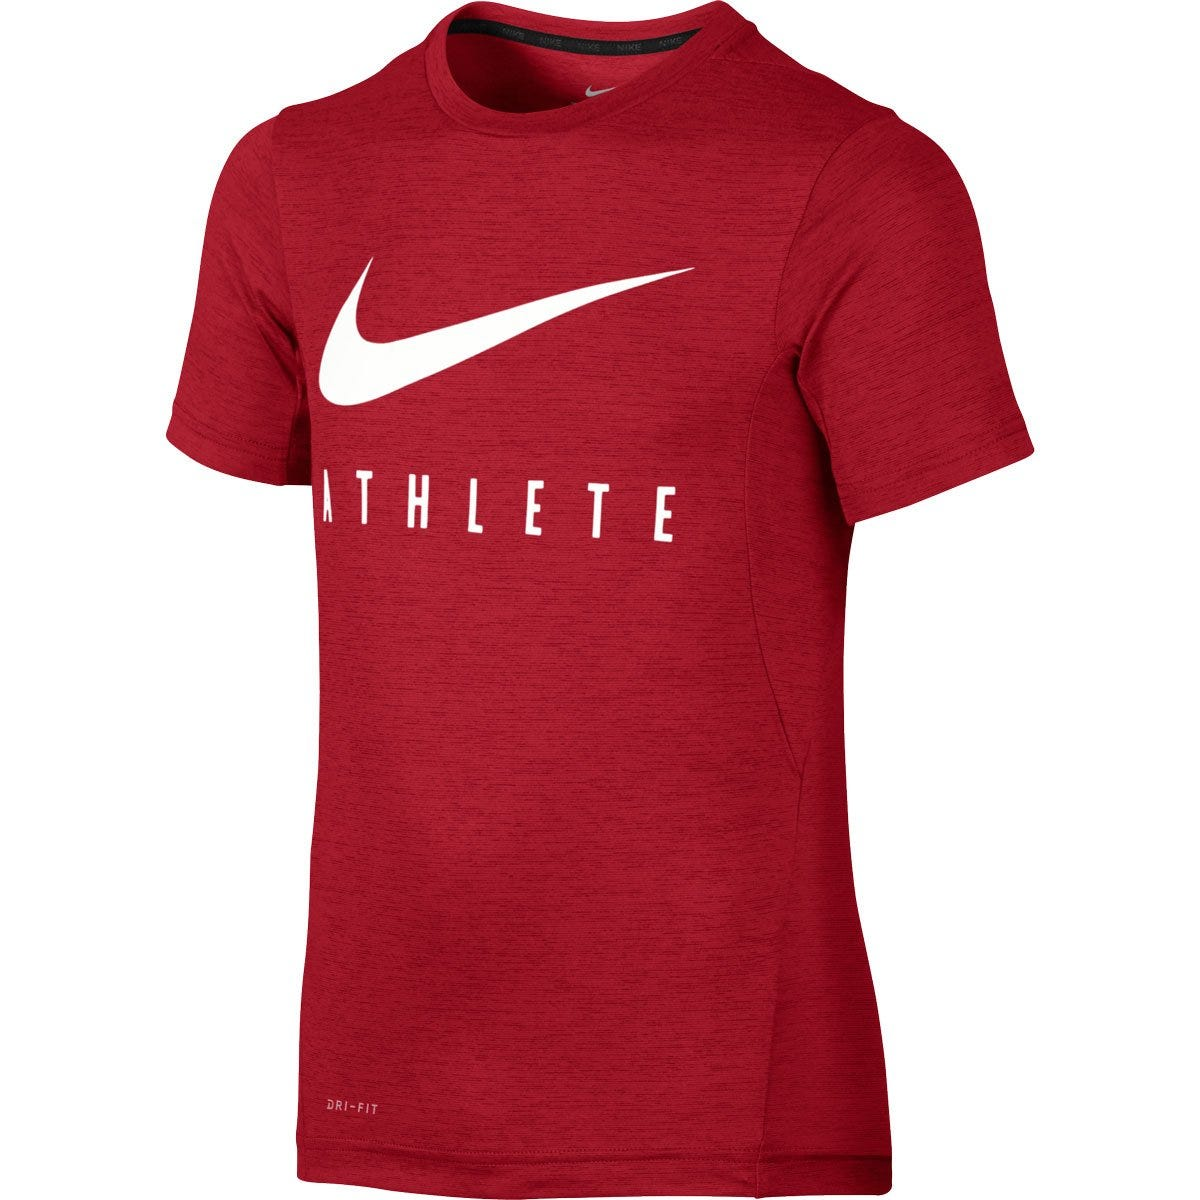 Nike Athlete Boy's Short Sleeve Training Top